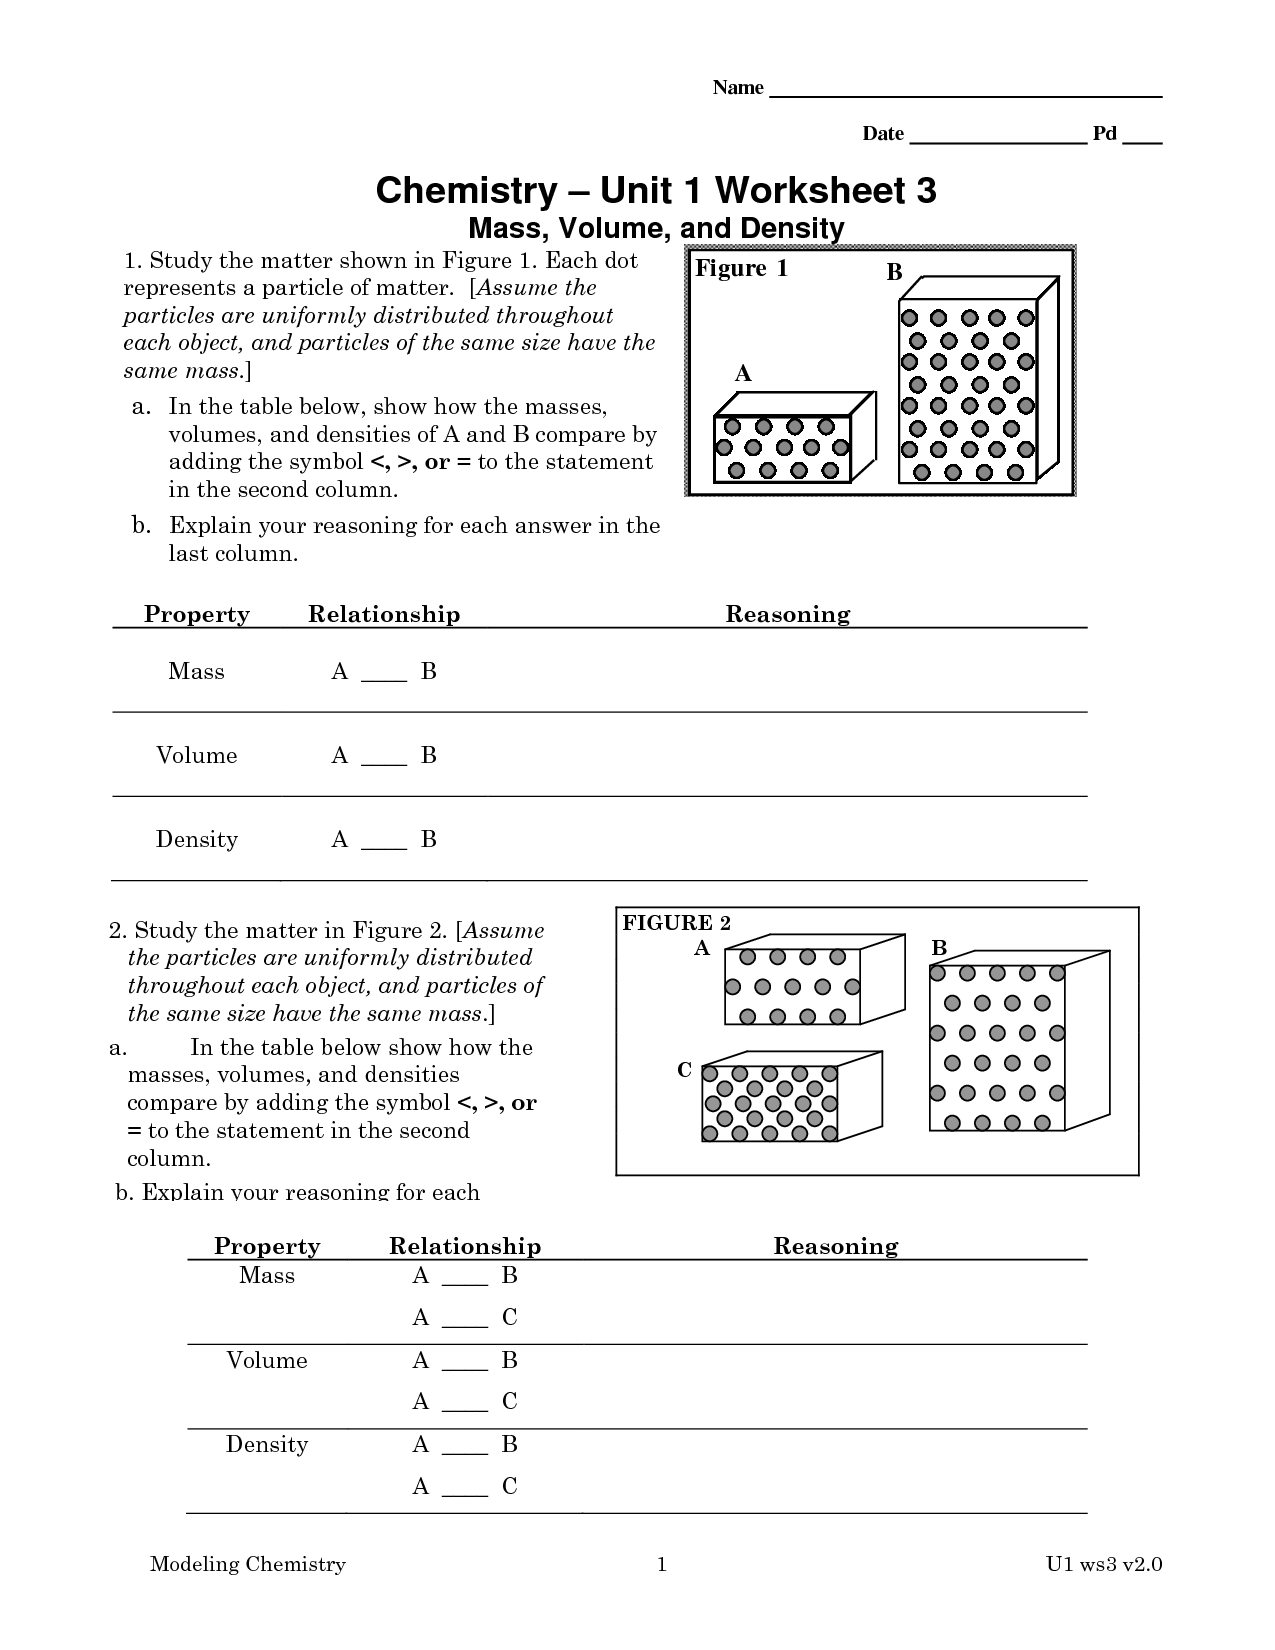 Chemistry Unit 1 Worksheet 3 Answer Key